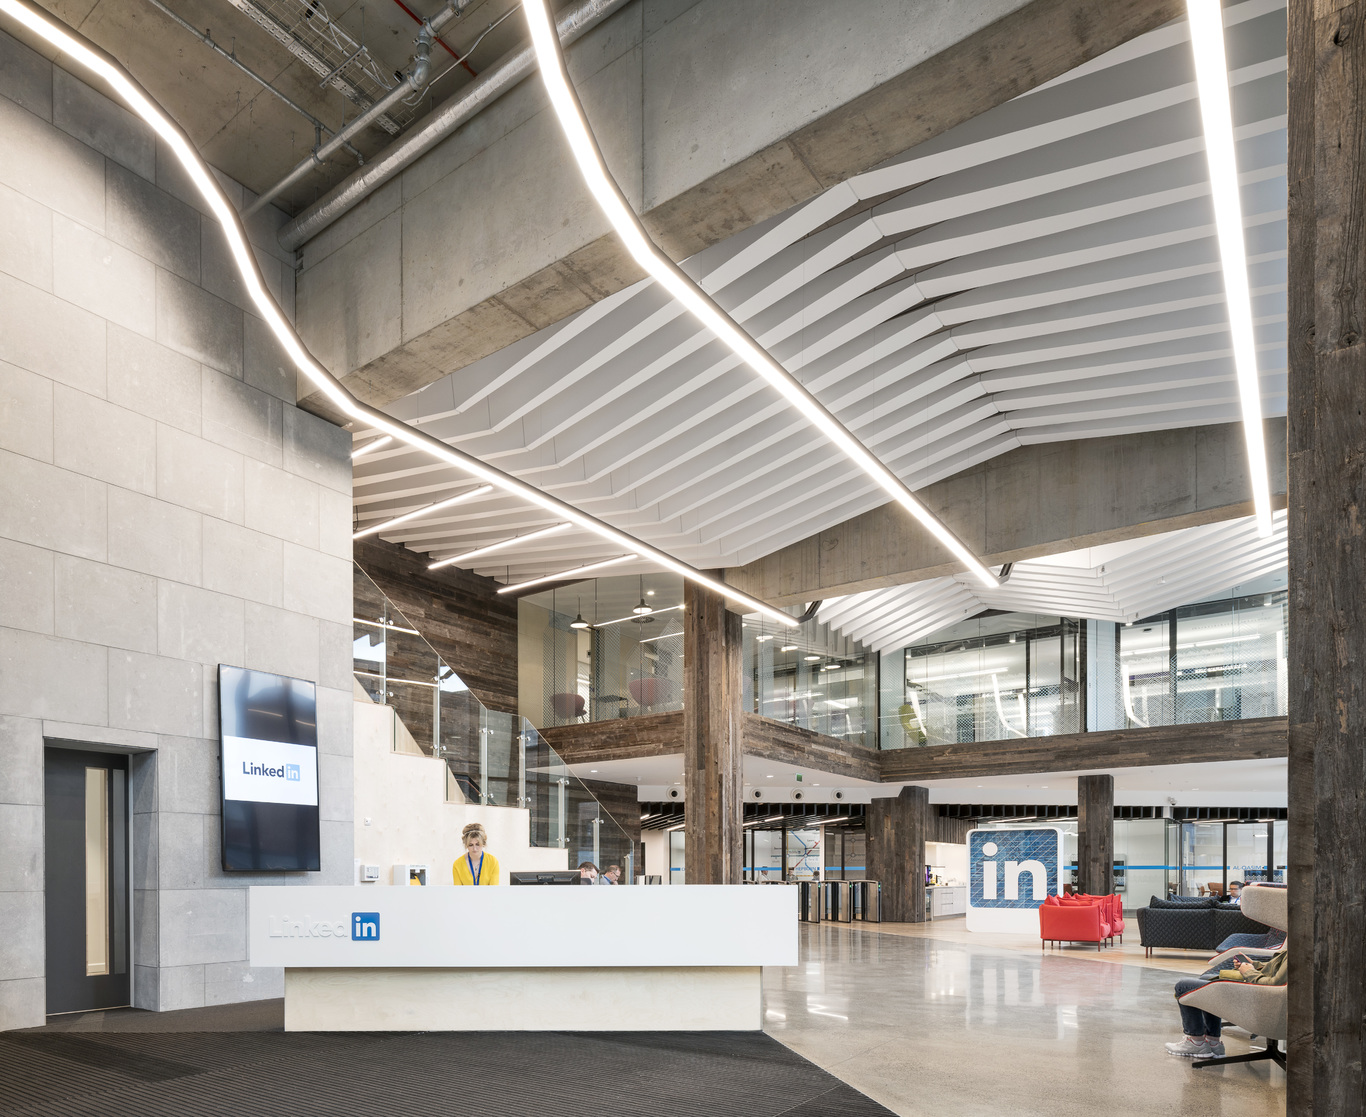 Take a guided tour of linkedin 39 s purpose built dublin office after months under wraps fora - Squarespace dublin office ...